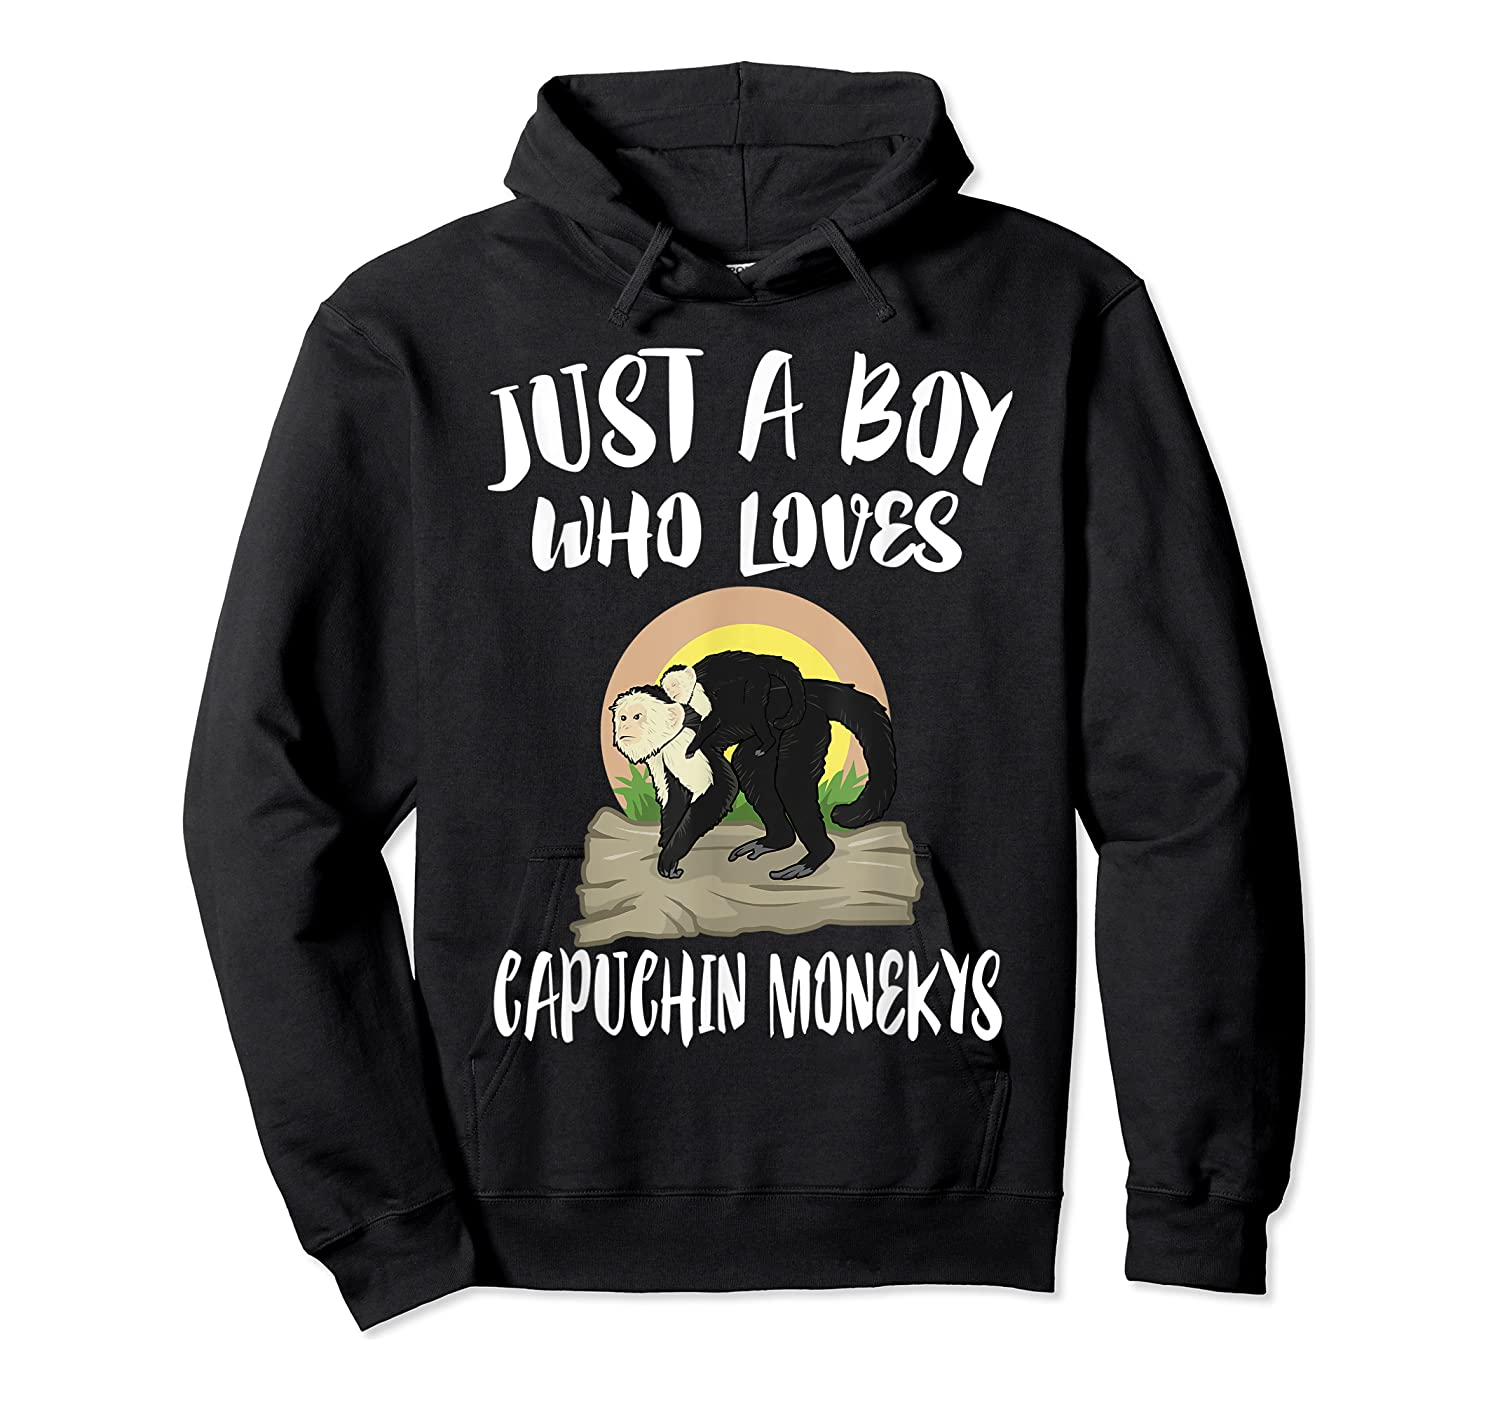 Just A Boy Who Loves Capuchin Monkeys T-shirt Unisex Pullover Hoodie